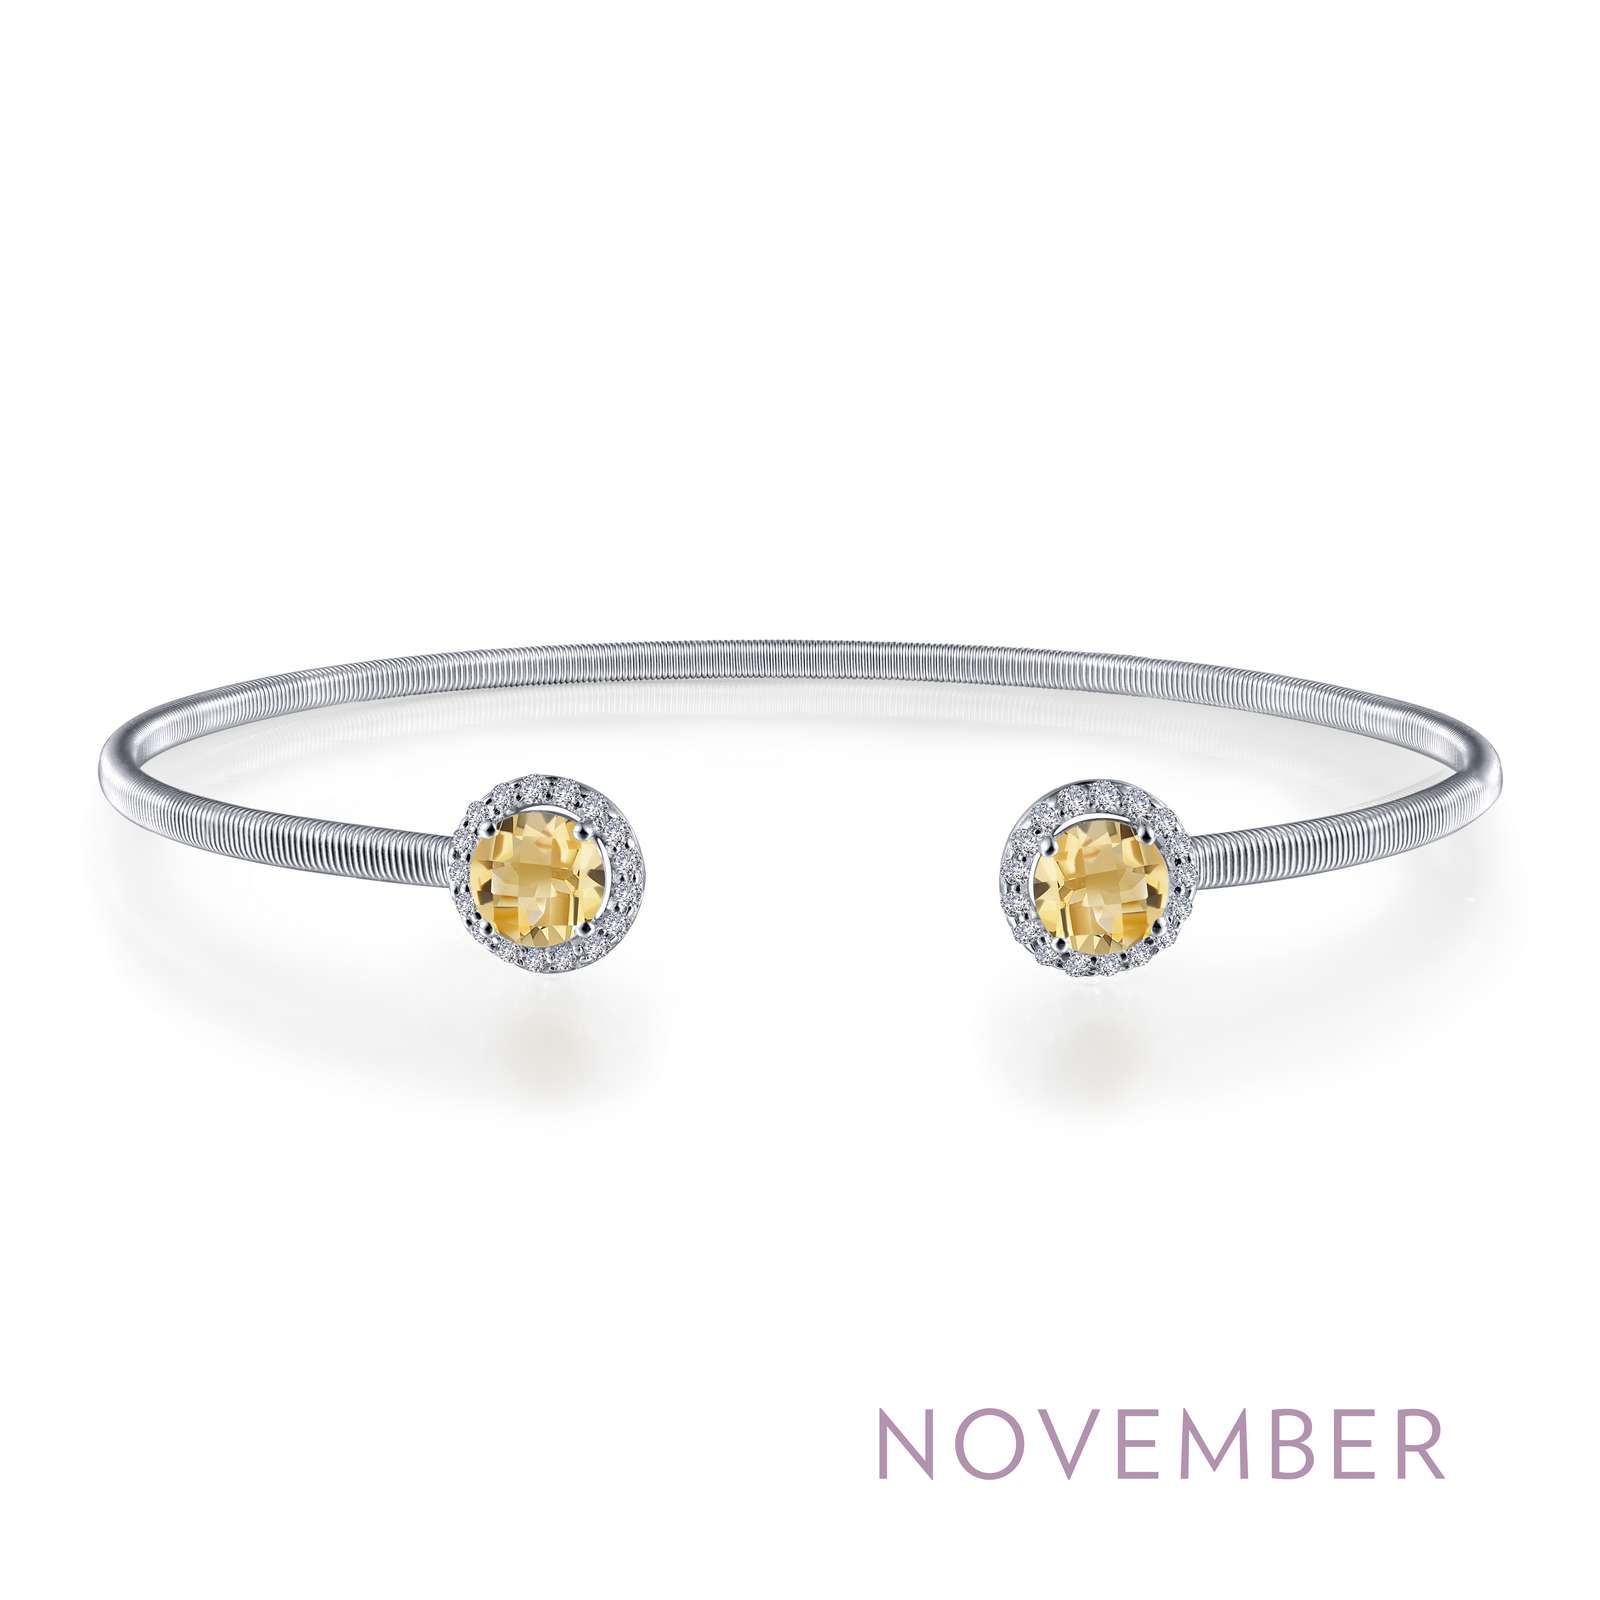 November - Citrine. Adorn yourself with Lafonn's birthstone jewelry. This flexible stackable open cuff halo bangle bracelet is set with Lafonn's signature Lassaire simulated diamonds and genuine citrines. Bracelet is in sterling silver bonded with platinum.